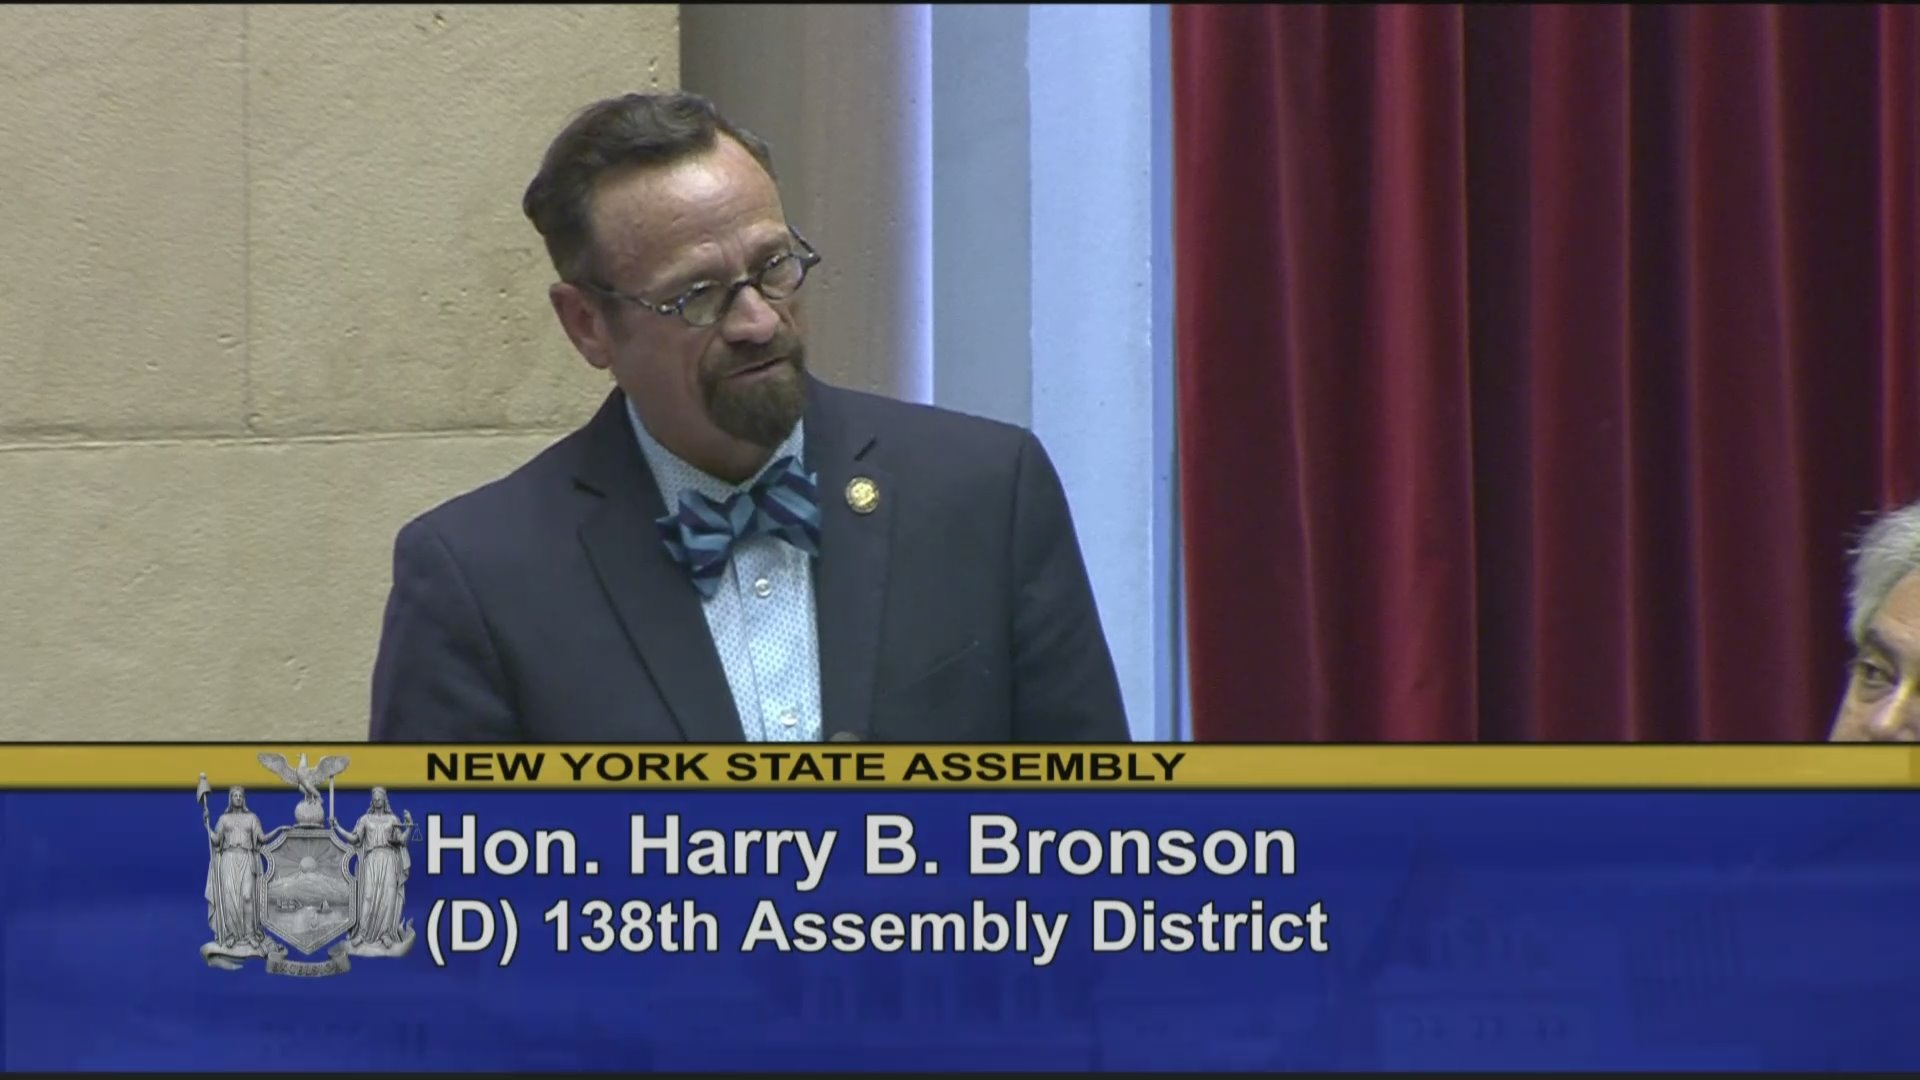 Assemblyman Bronson Honors Deceased Former Members